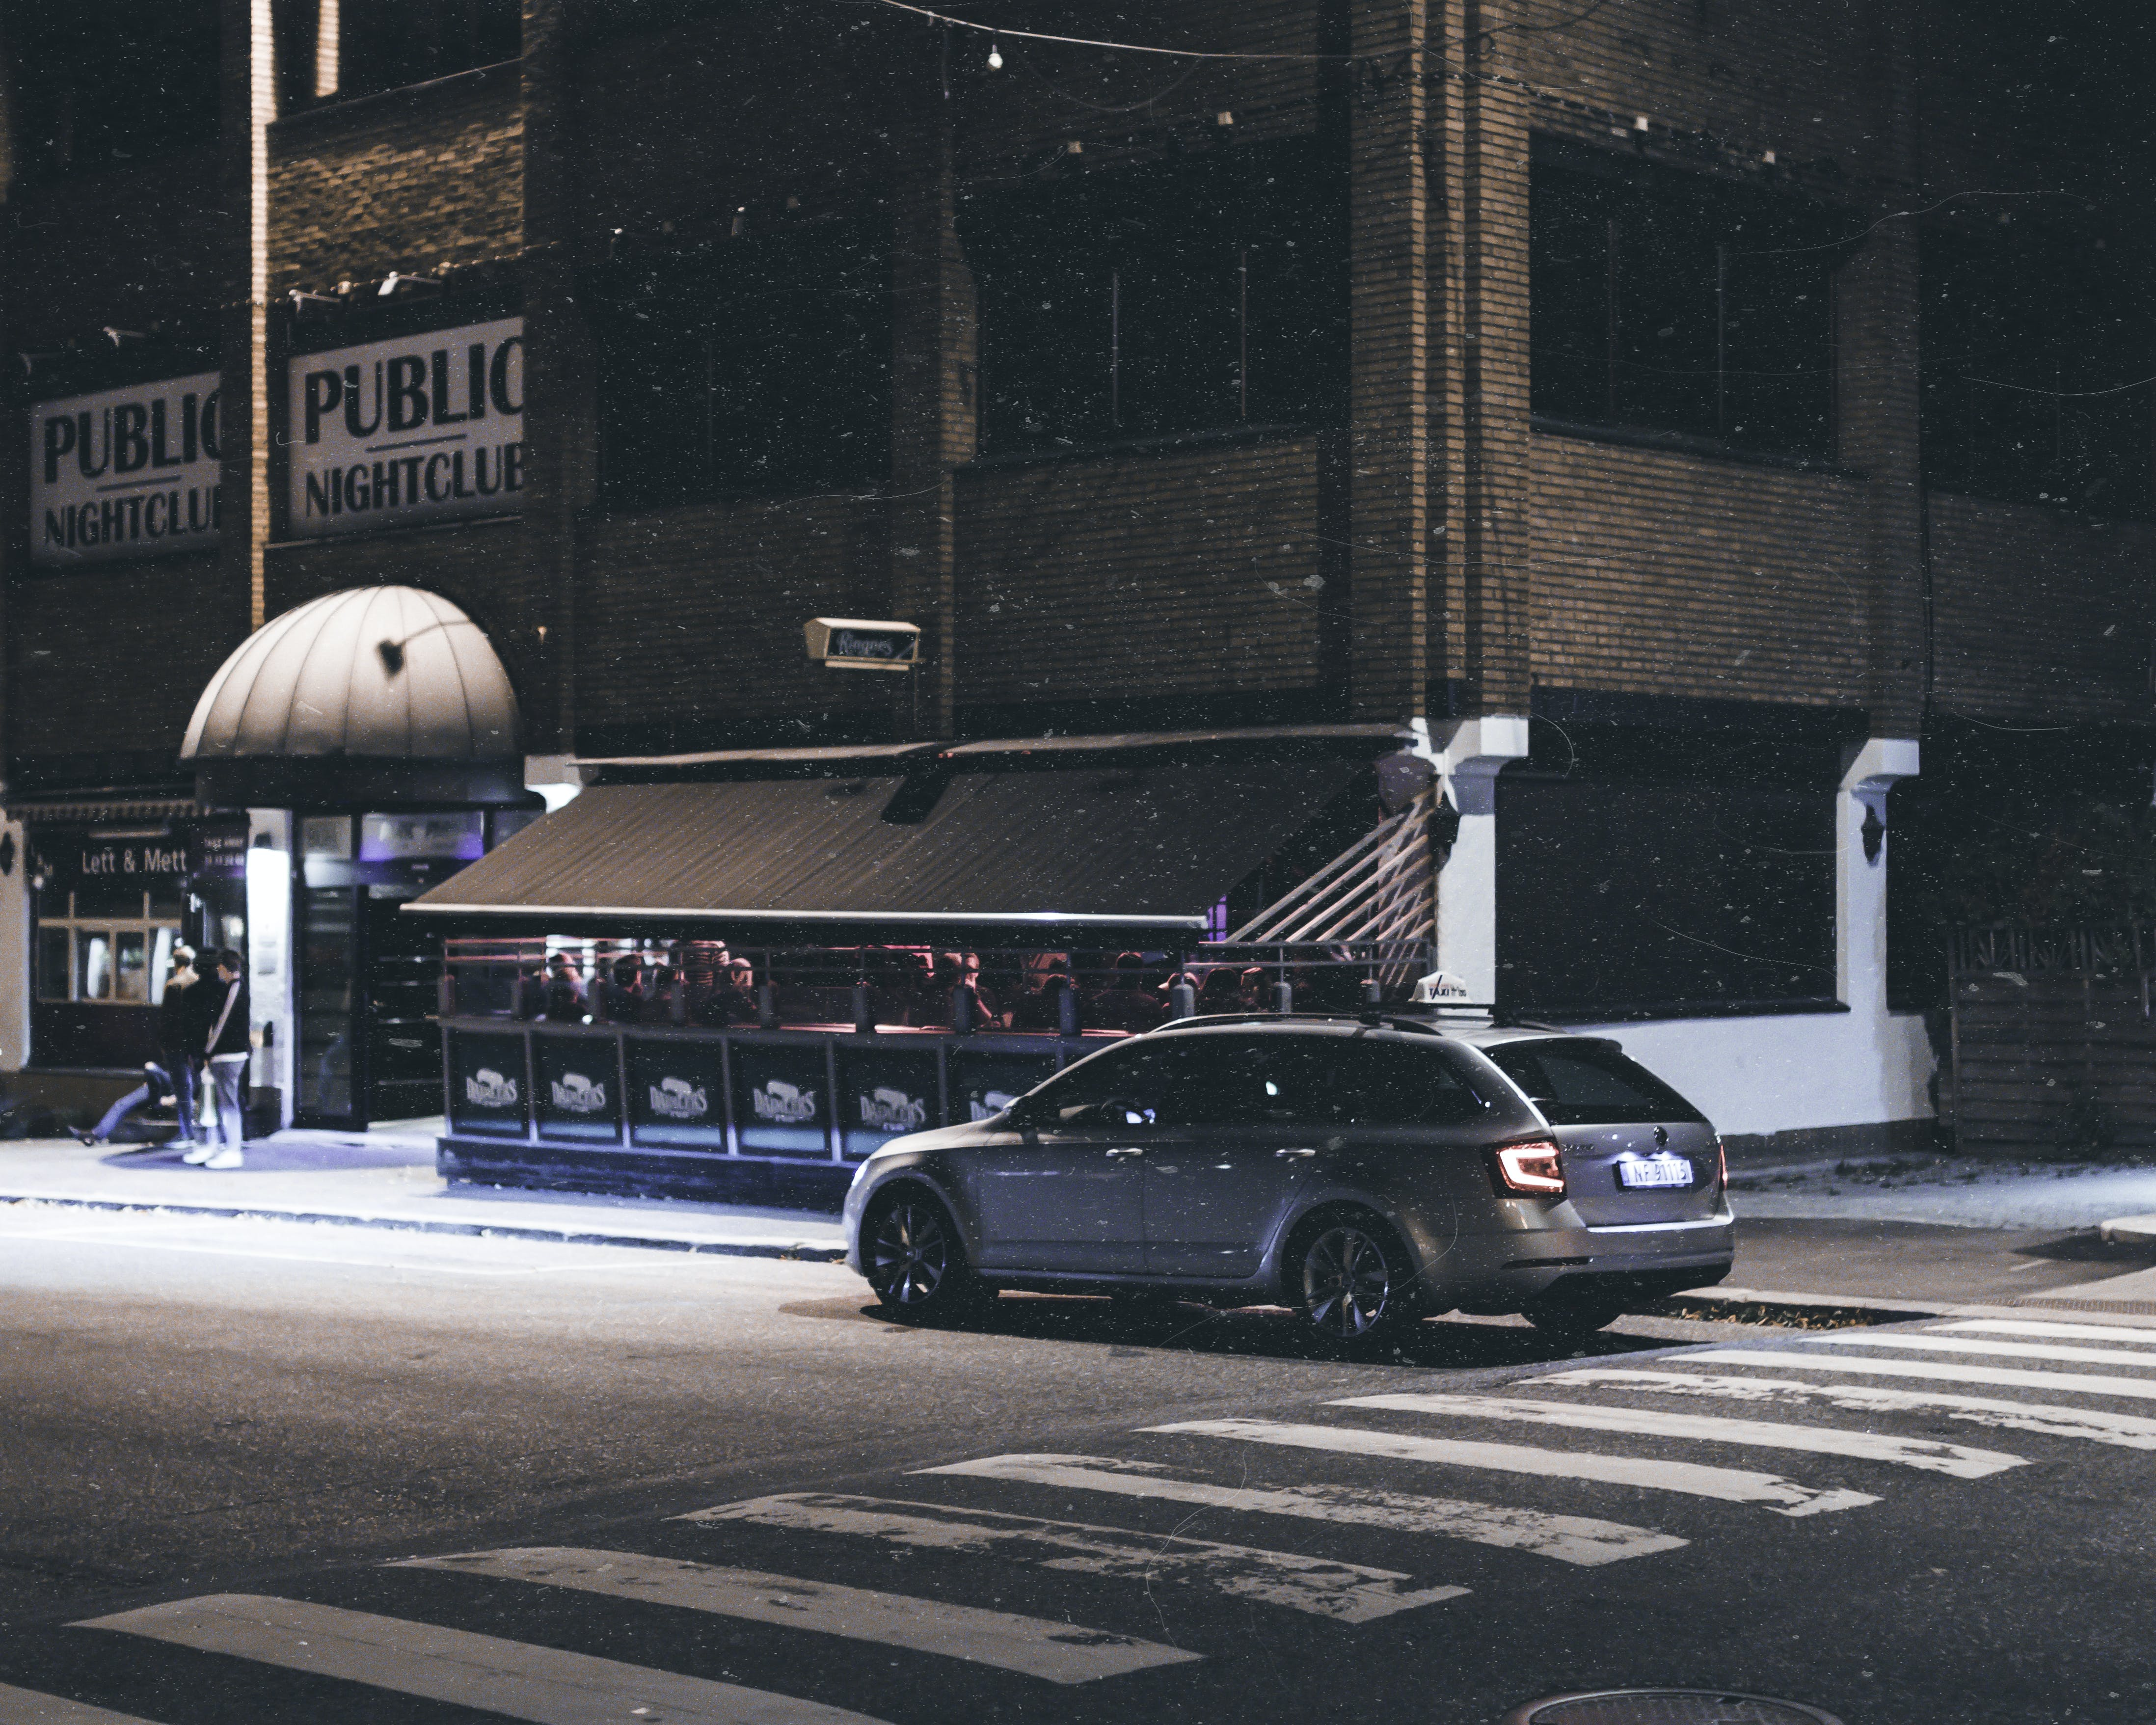 Gray Station Wagon Parked on Road at Night